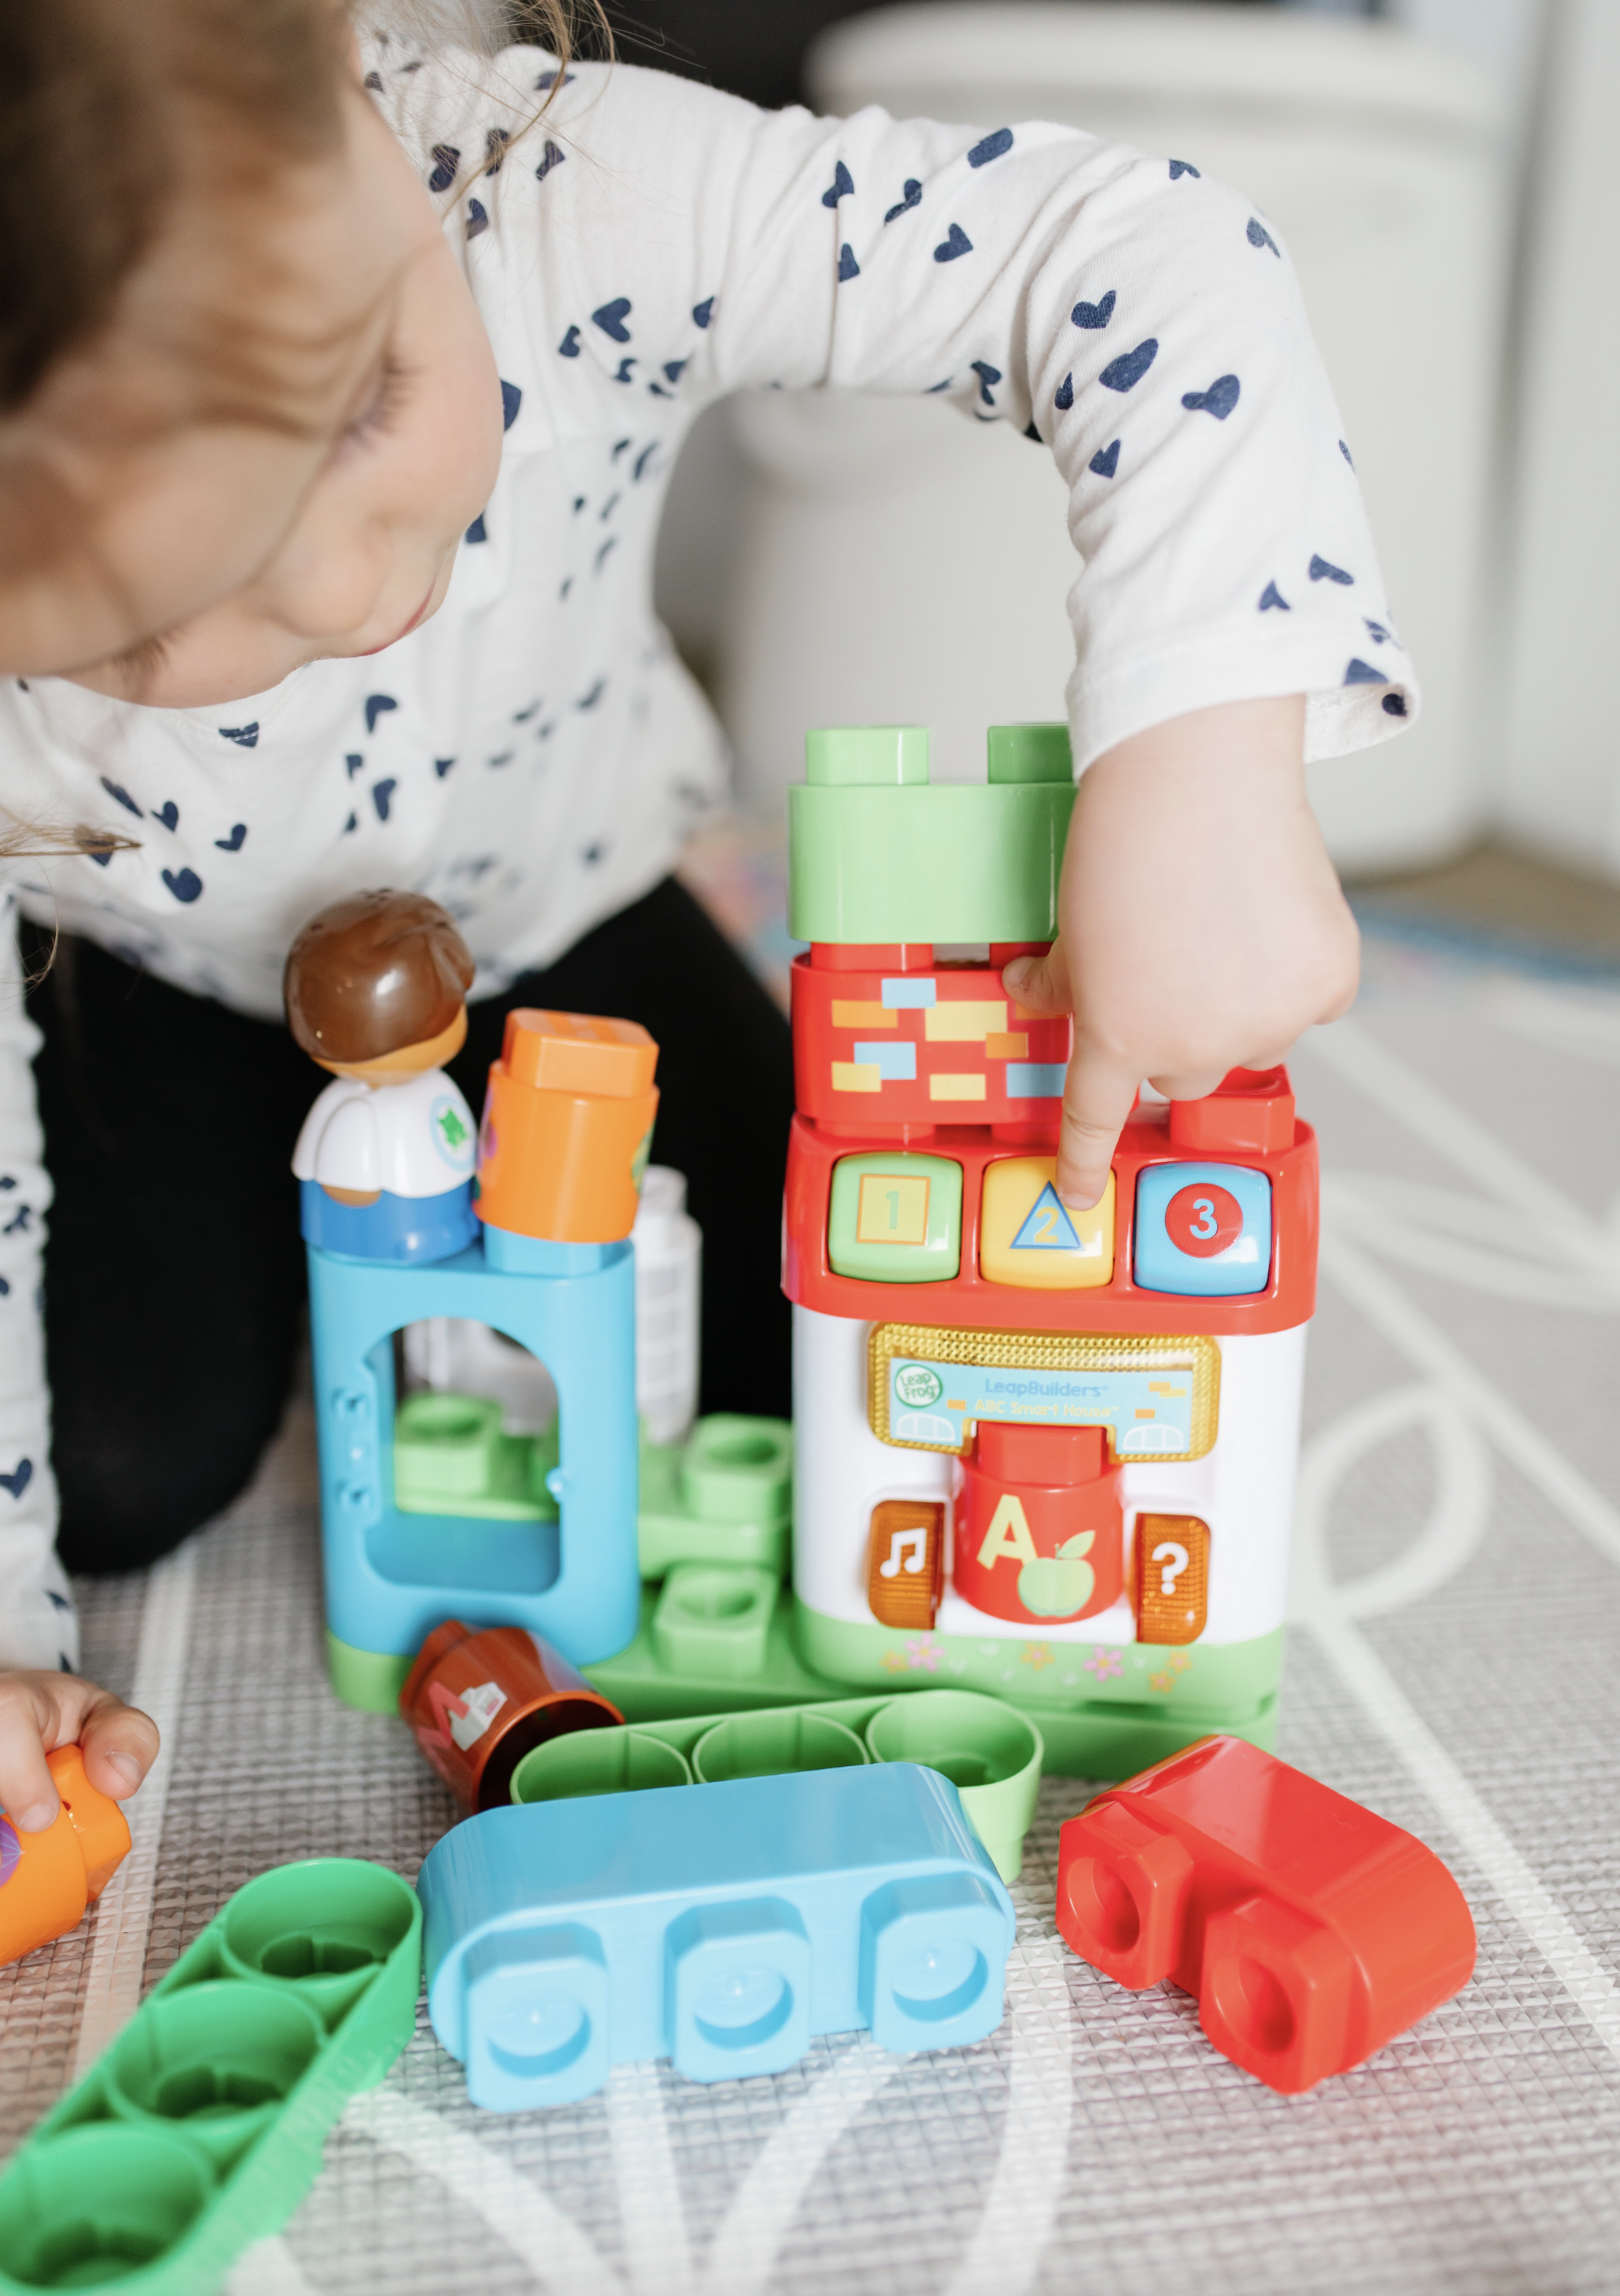 interactive-learning-toys-for-toddlers Leapbuilders